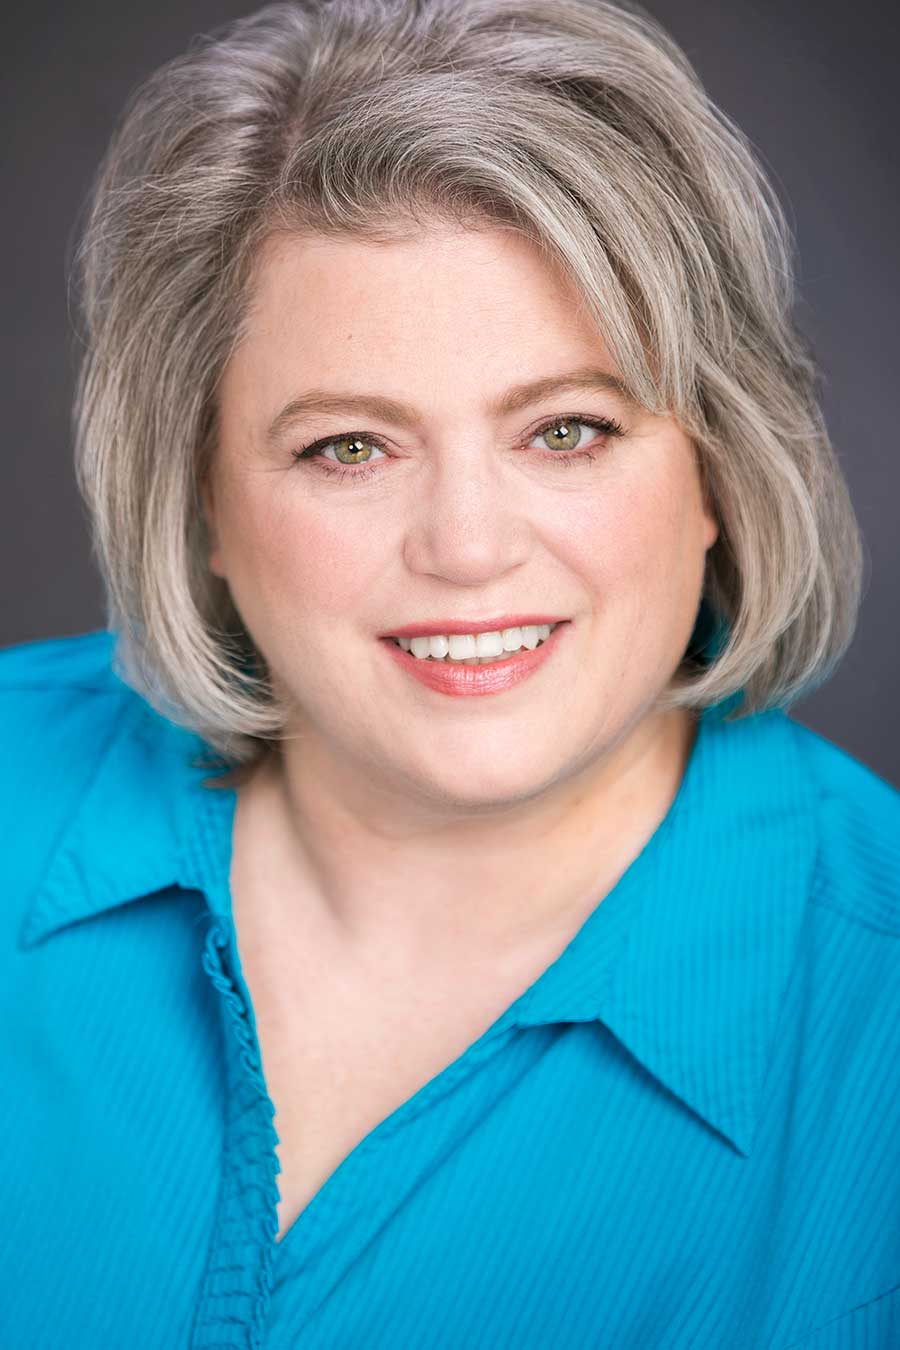 Helene DonohueMinneapolis - Lady Dynamite Netflix Original, HBO, Sun Country Commercial, 3M Commercial & Print, Best Buy In Store Video, Indie Film Lake Runs Red, U of M Commercial, Redbrick Health, Eco-Lab, Dillards, 3M,Fingerhut,Travel Leaders Network, Humana, EcolabPast Convention Talent